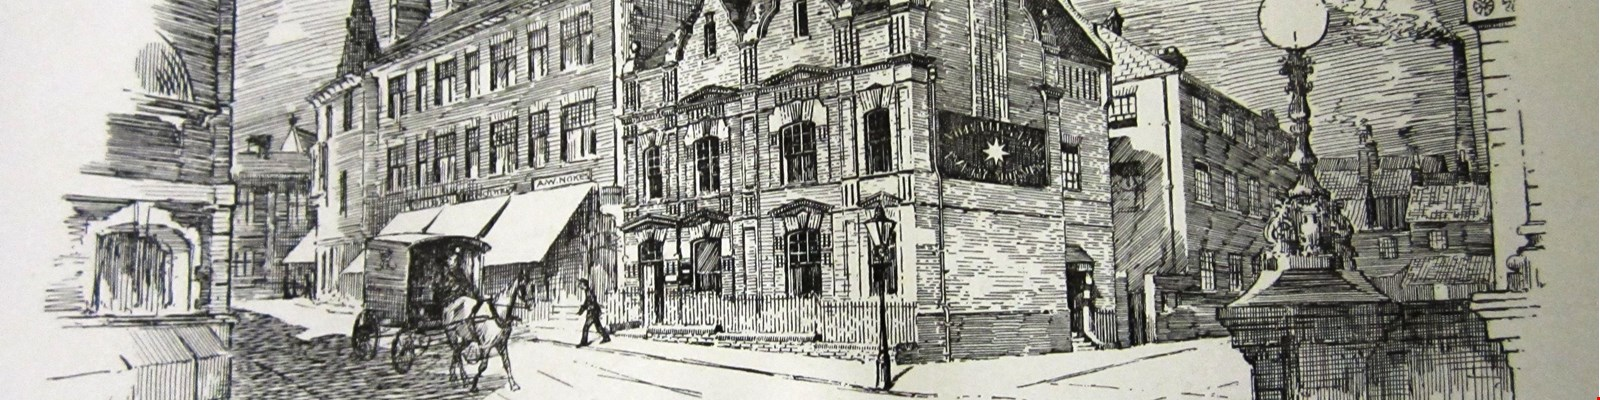 a black and white etching of crown street